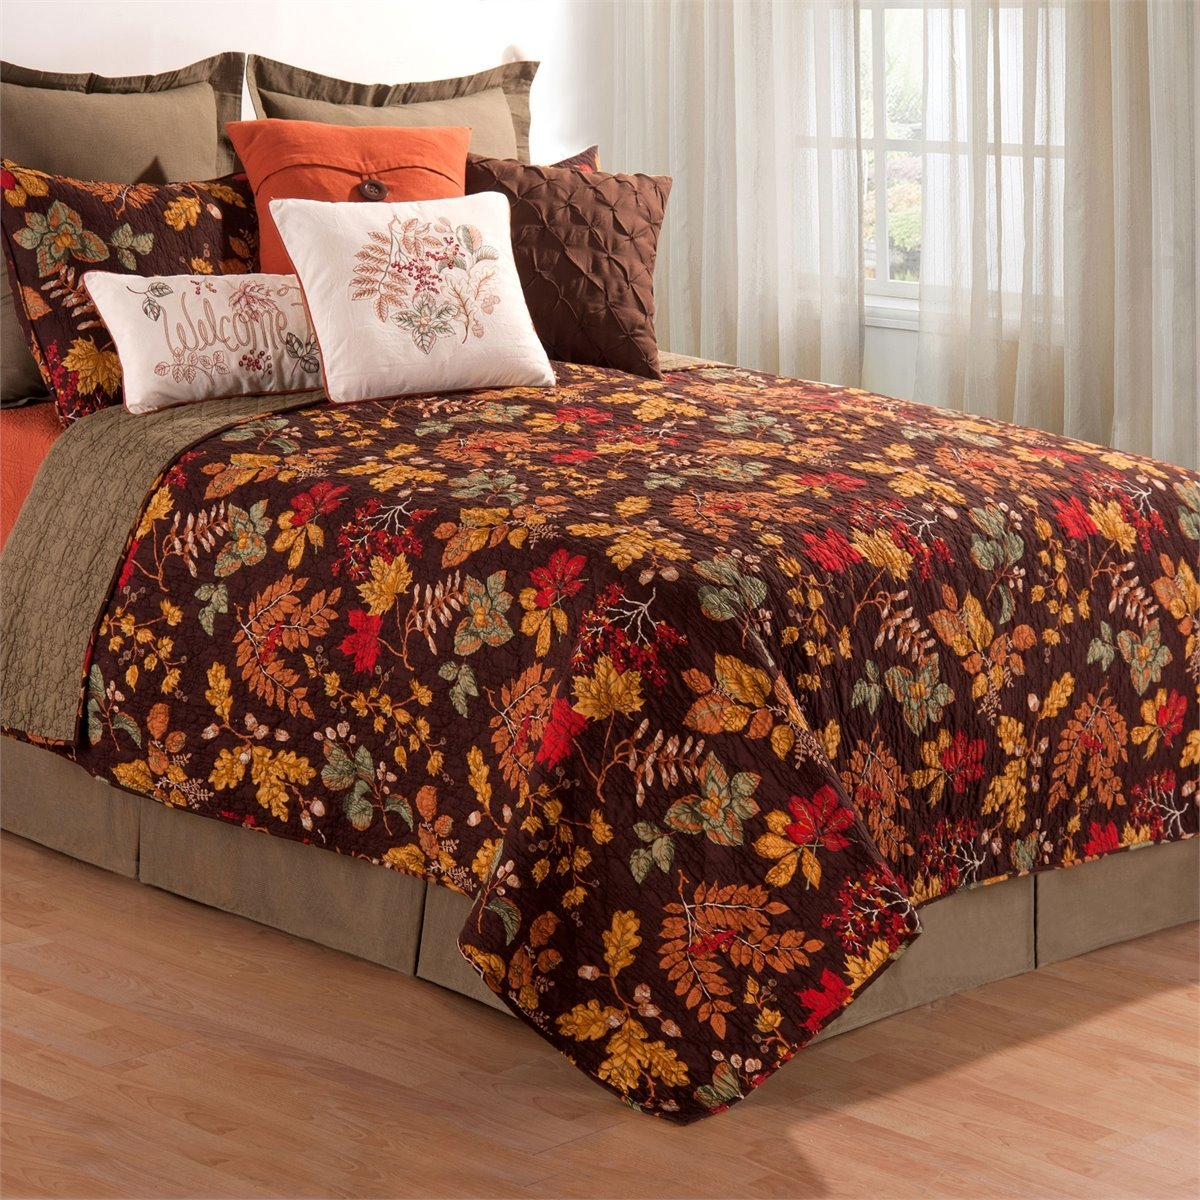 Amison King Quilt